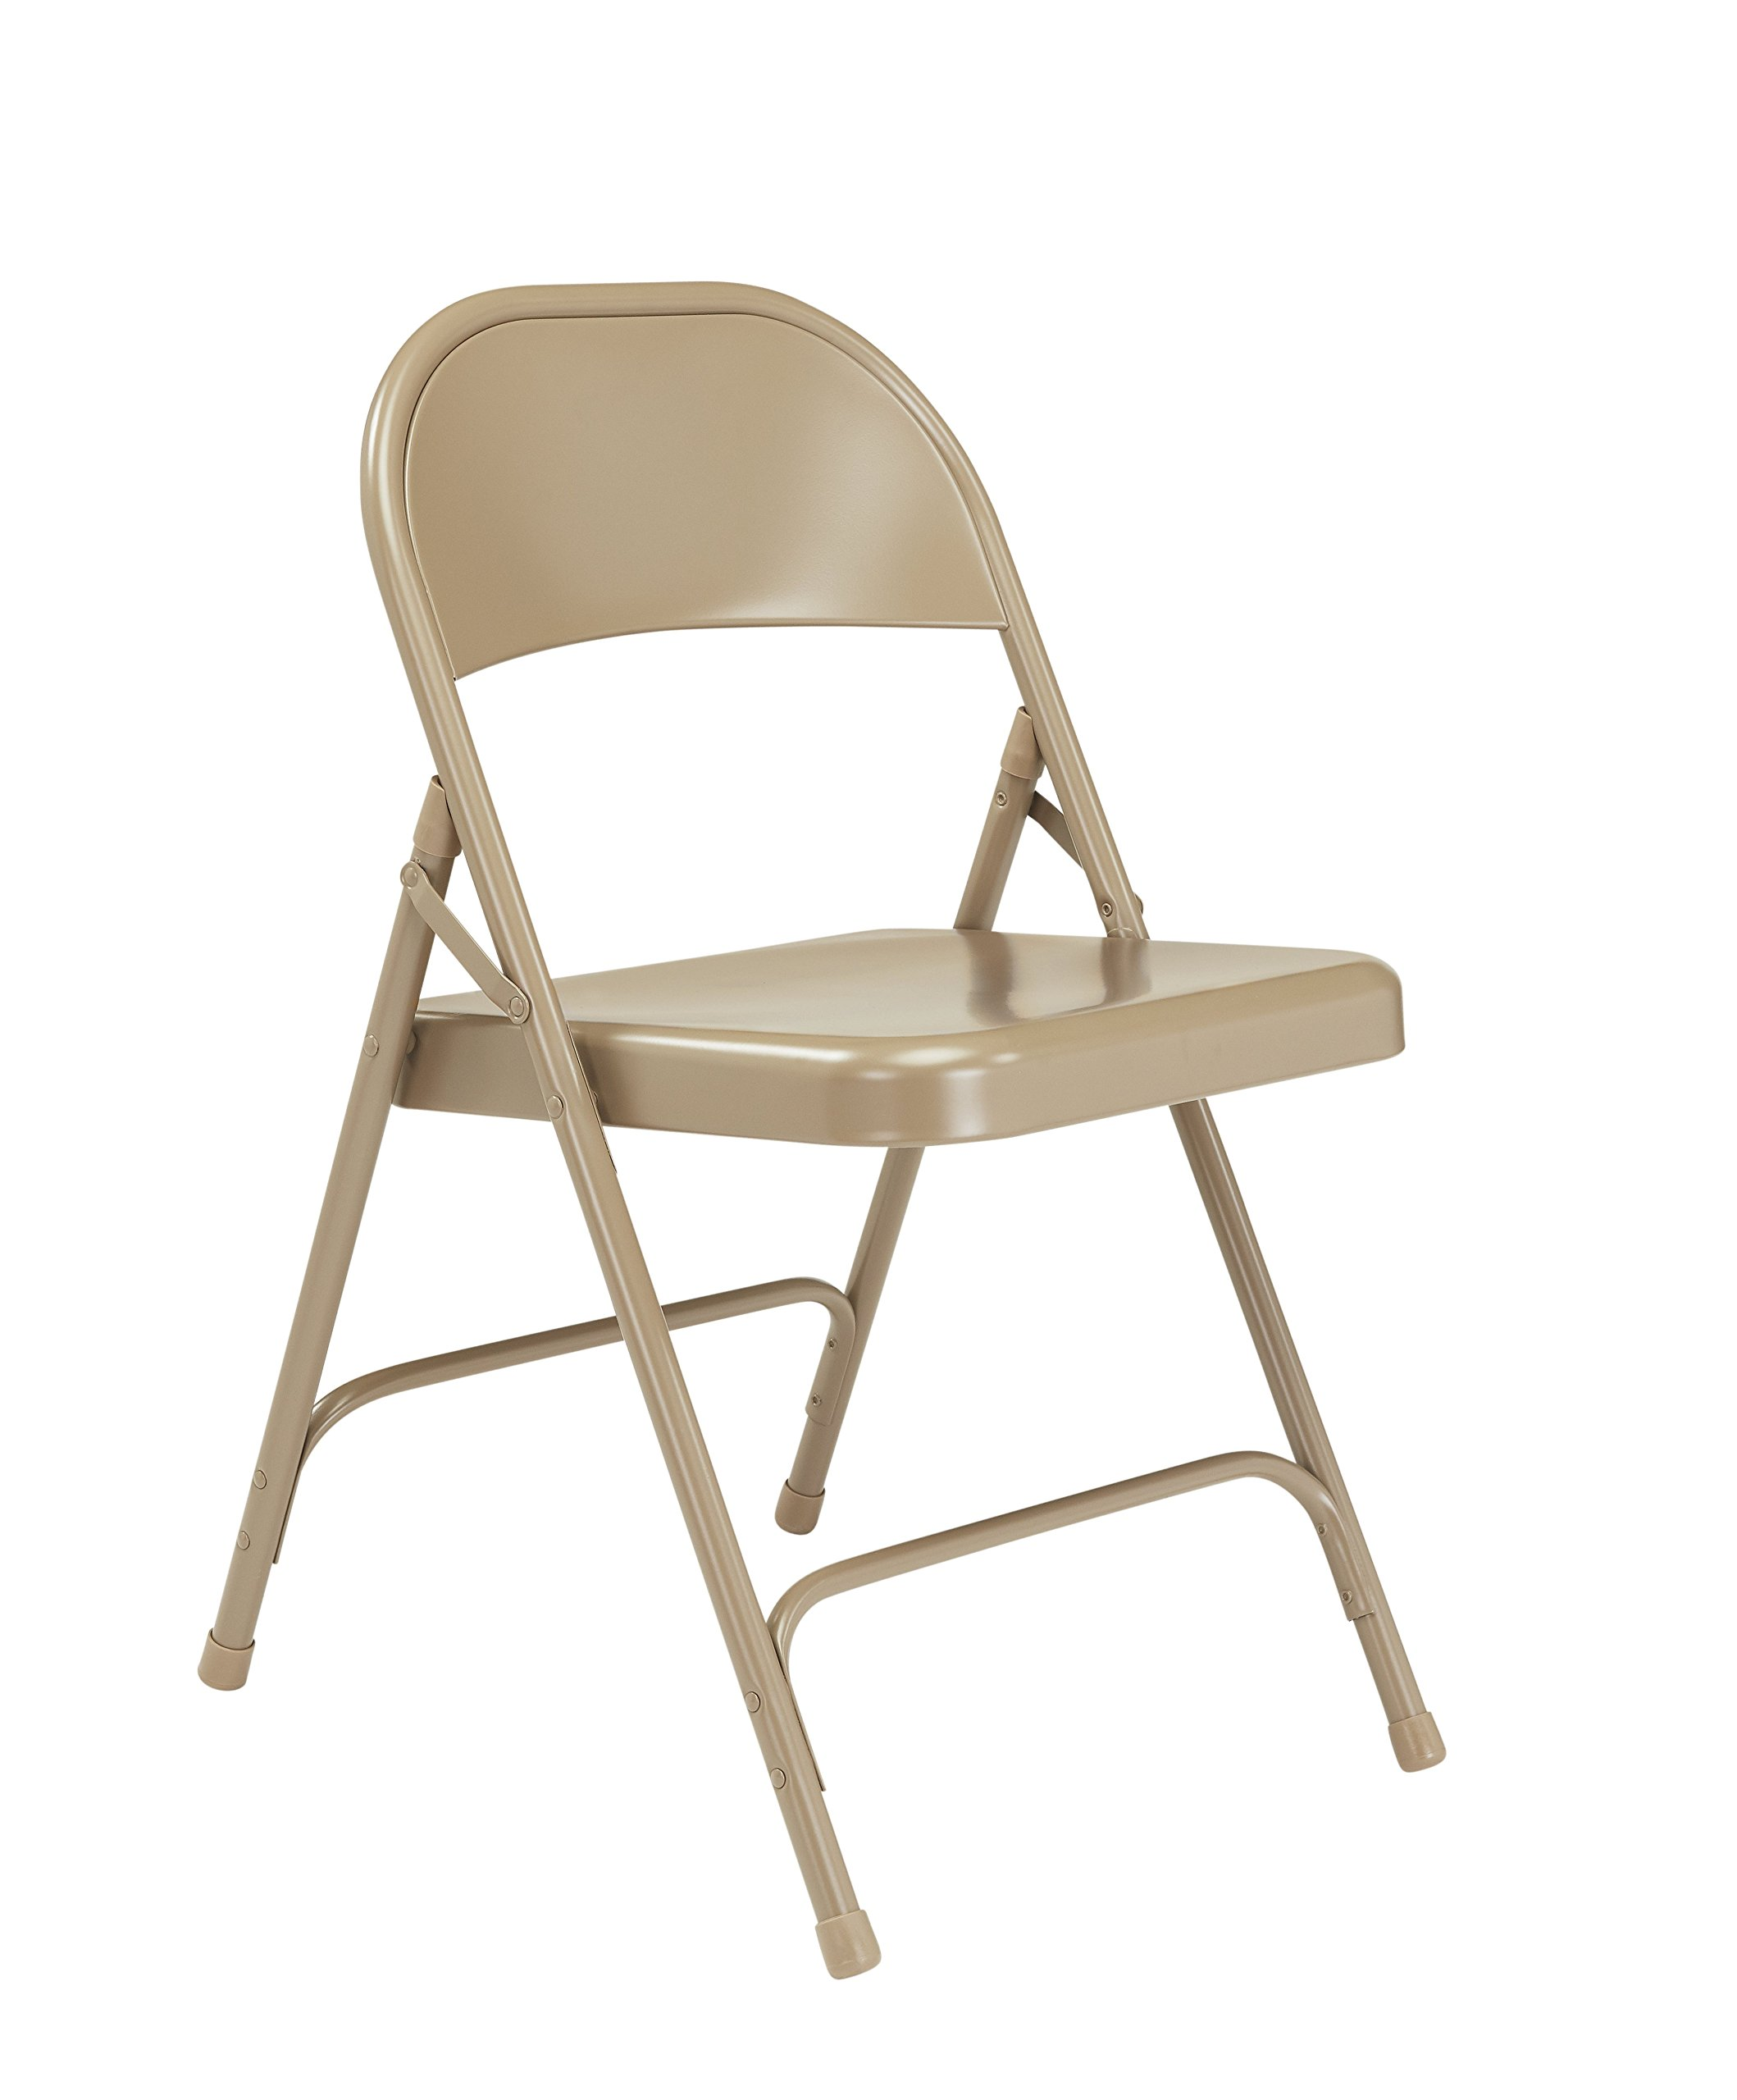 National Public Seating 50 Series All Steel Standard Folding Chair with Double Brace, 480 lbs Capacity, Beige (Carton of 4) by National Public Seating